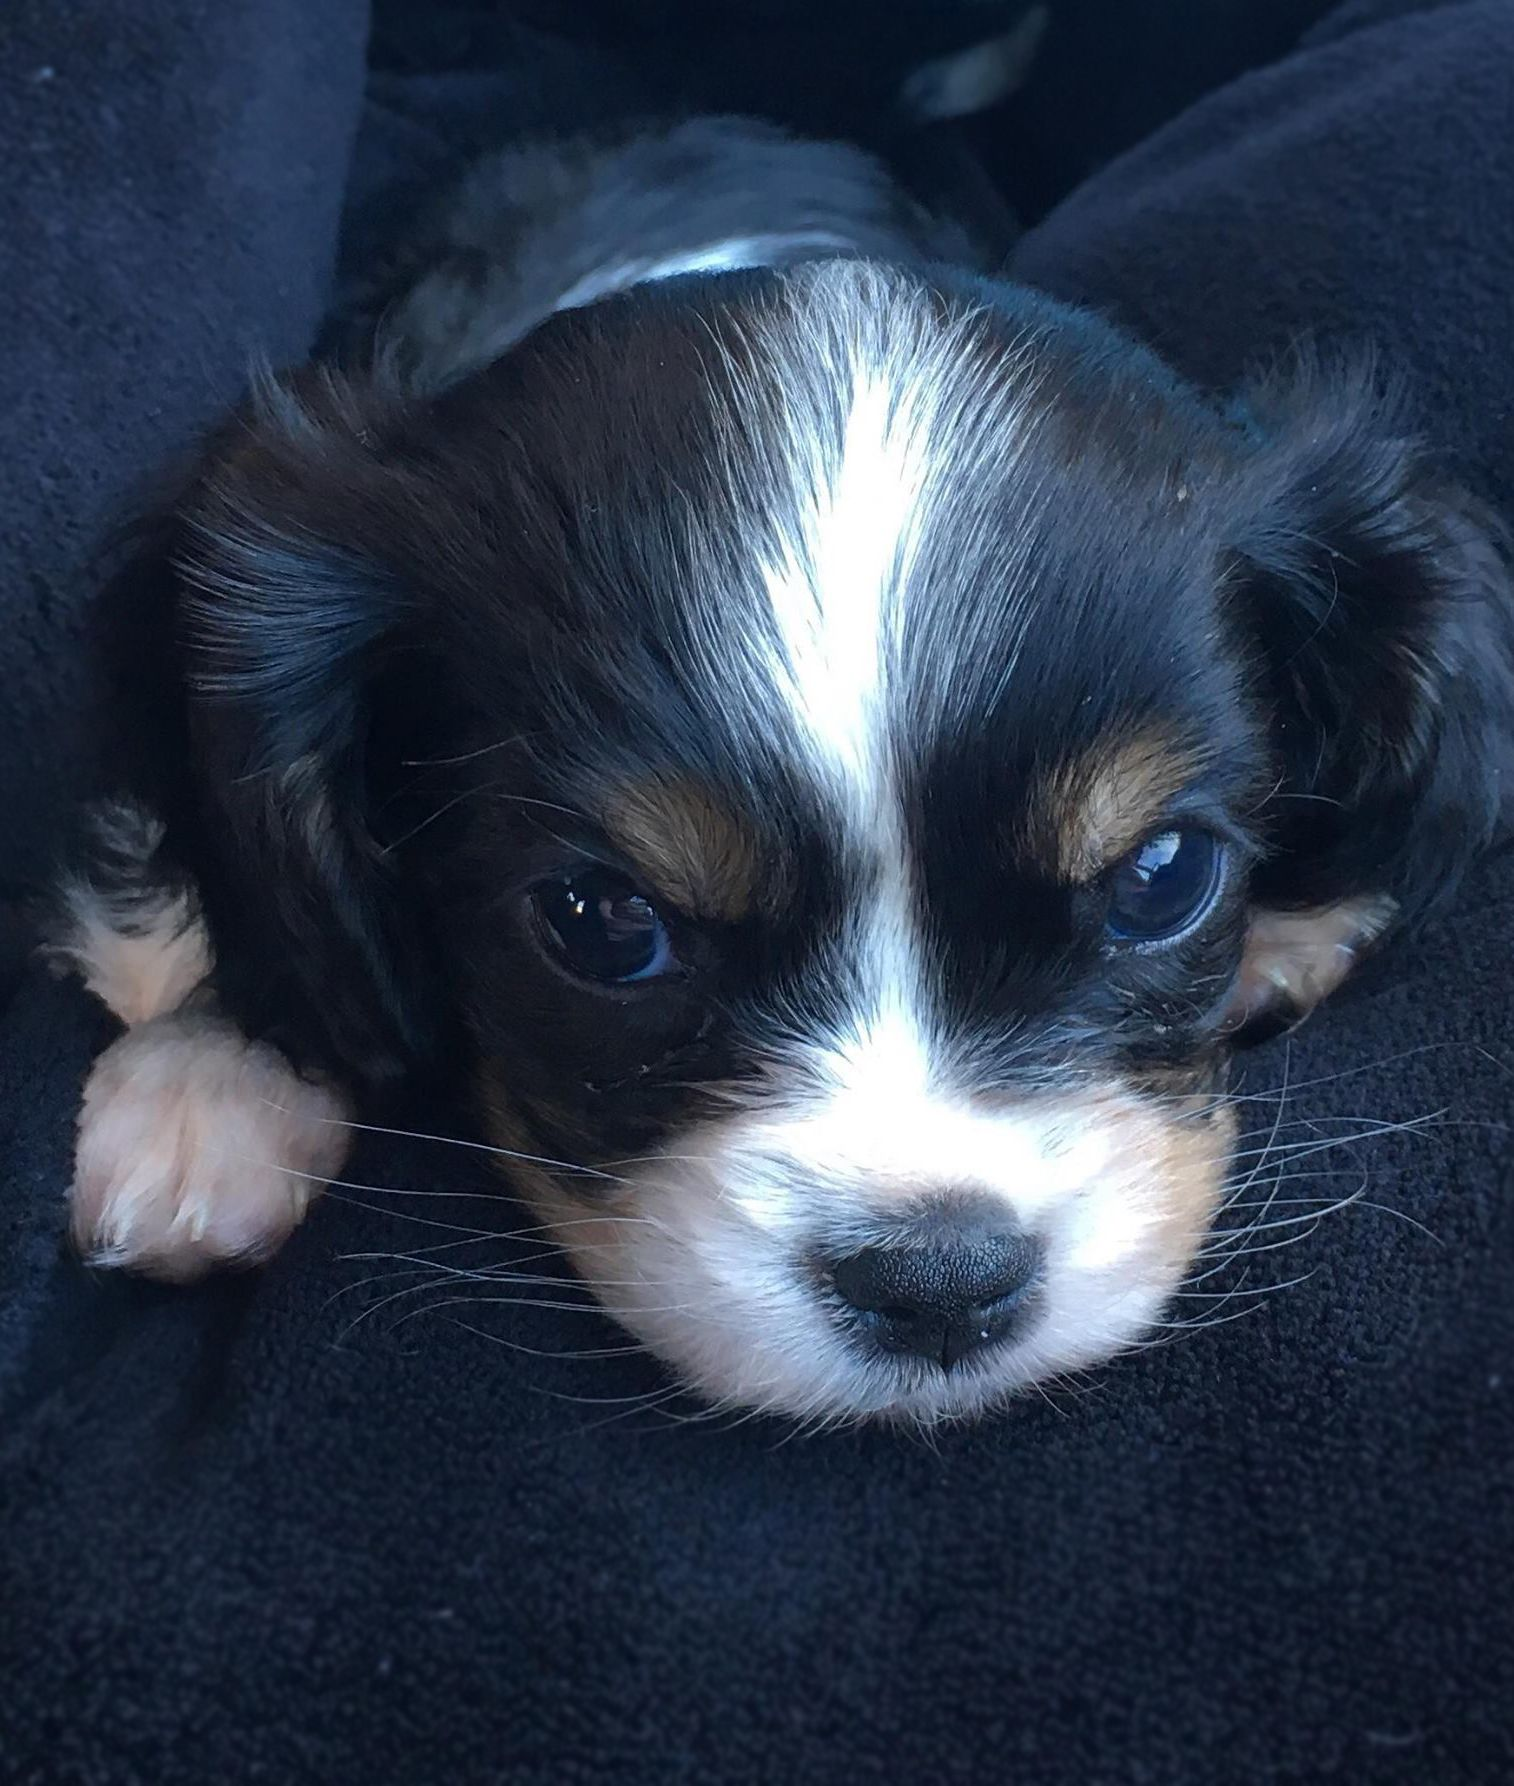 We have fallen in love with this puppy! This is